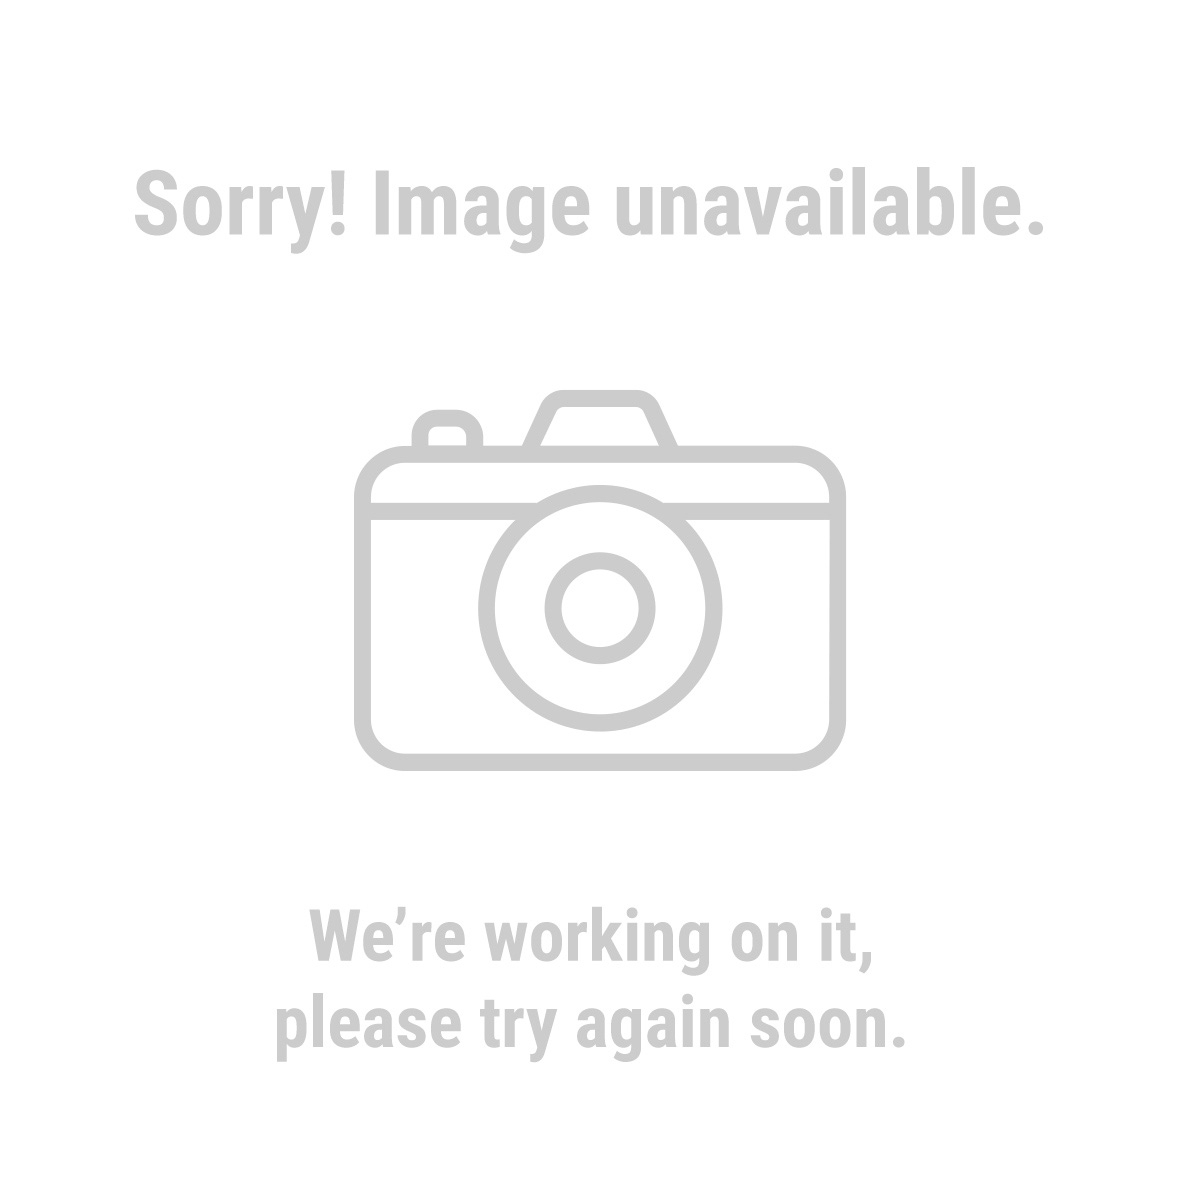 HFT® 45283 25 Ft. Outdoor Extension Cord